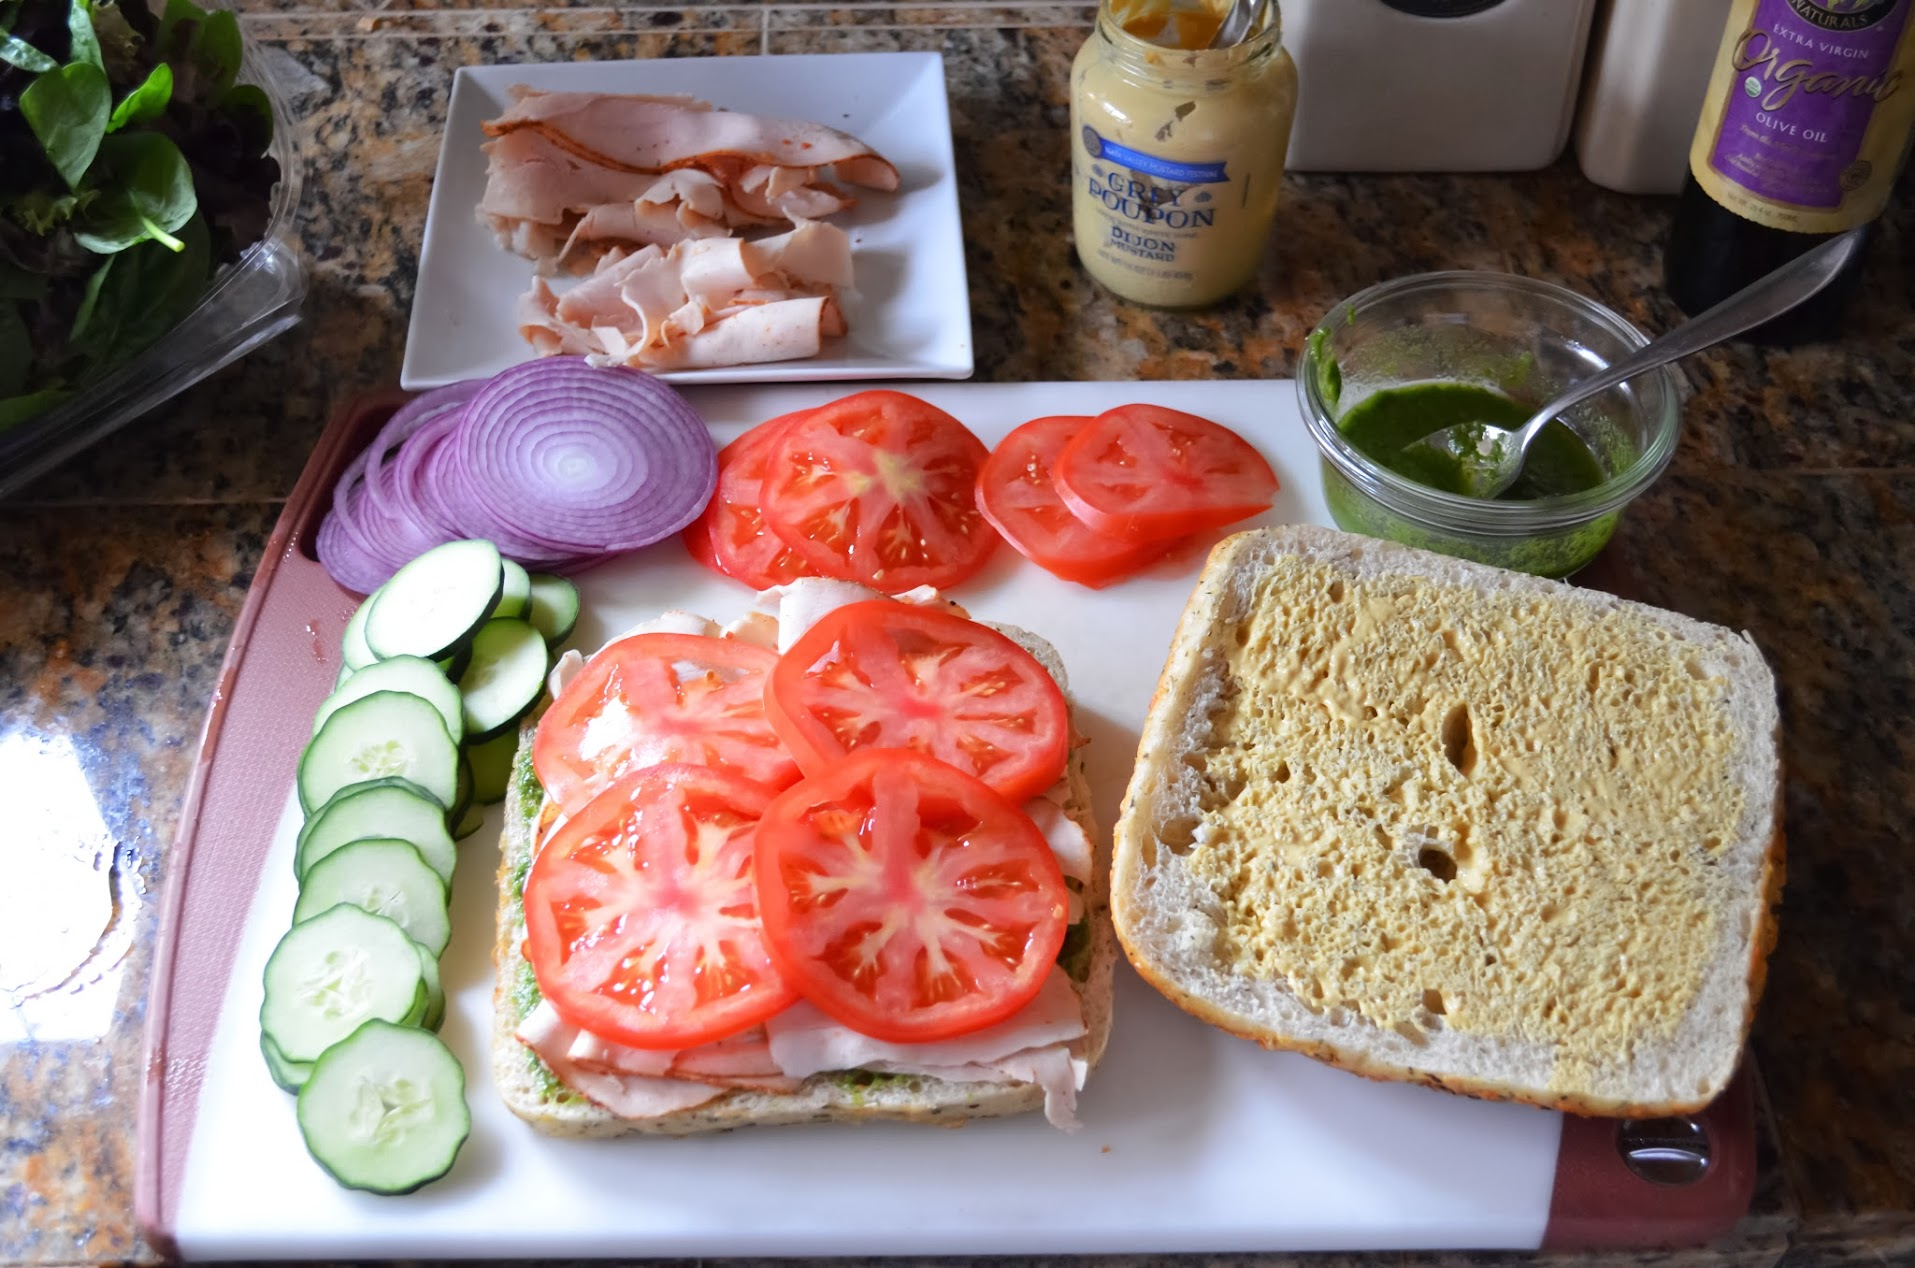 Turkey-Pesto-Paninis-Turkey-Tomatoes-Salt-Pepper.jpg